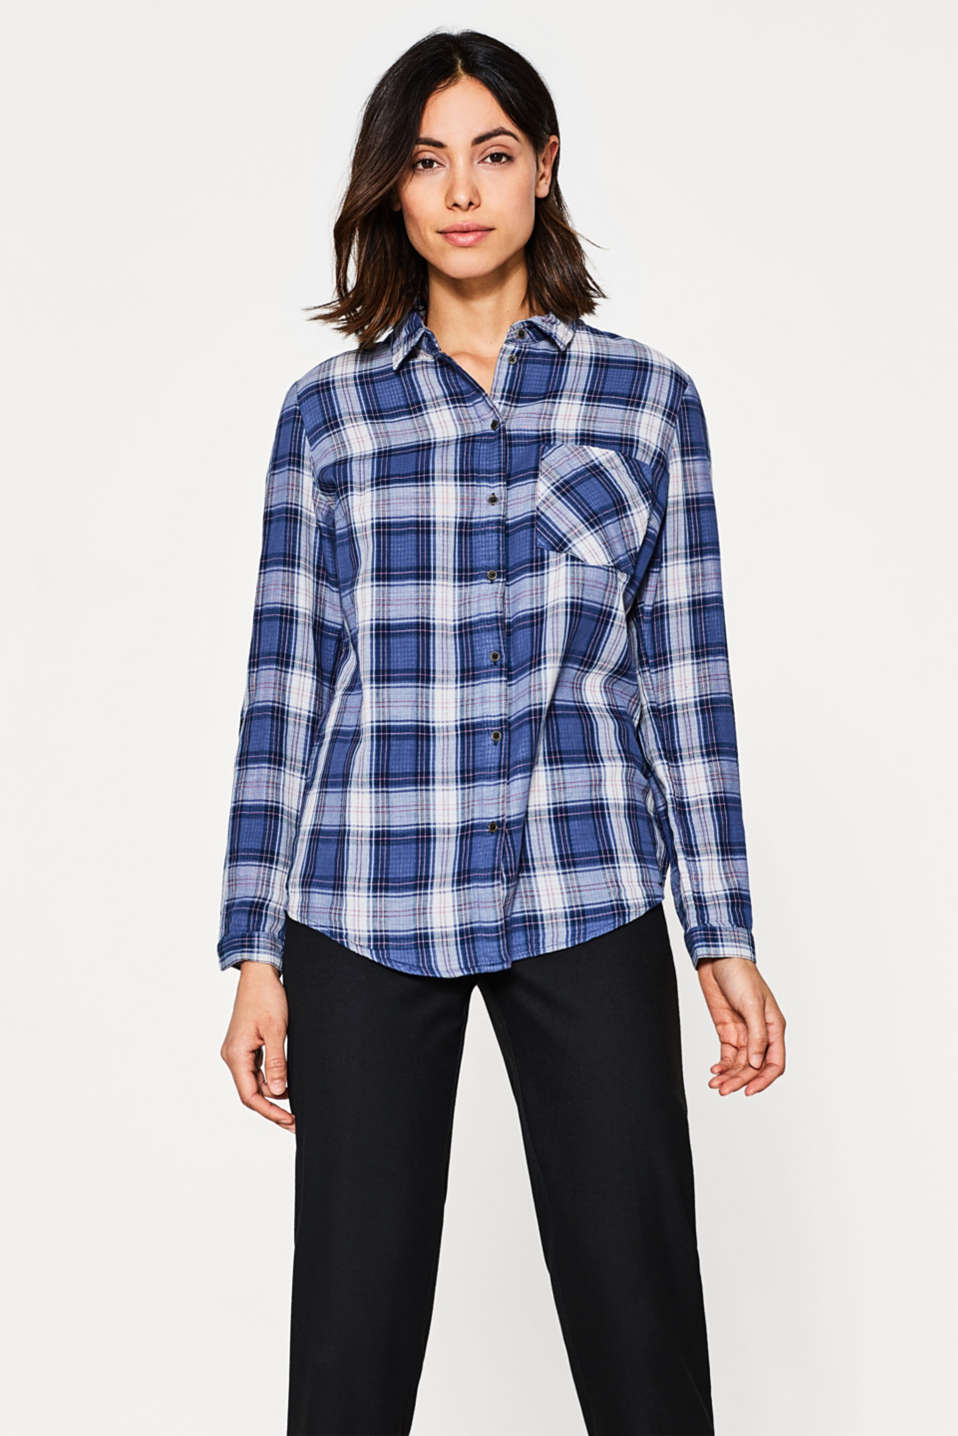 Esprit - Double-faced blouse in 100% cotton